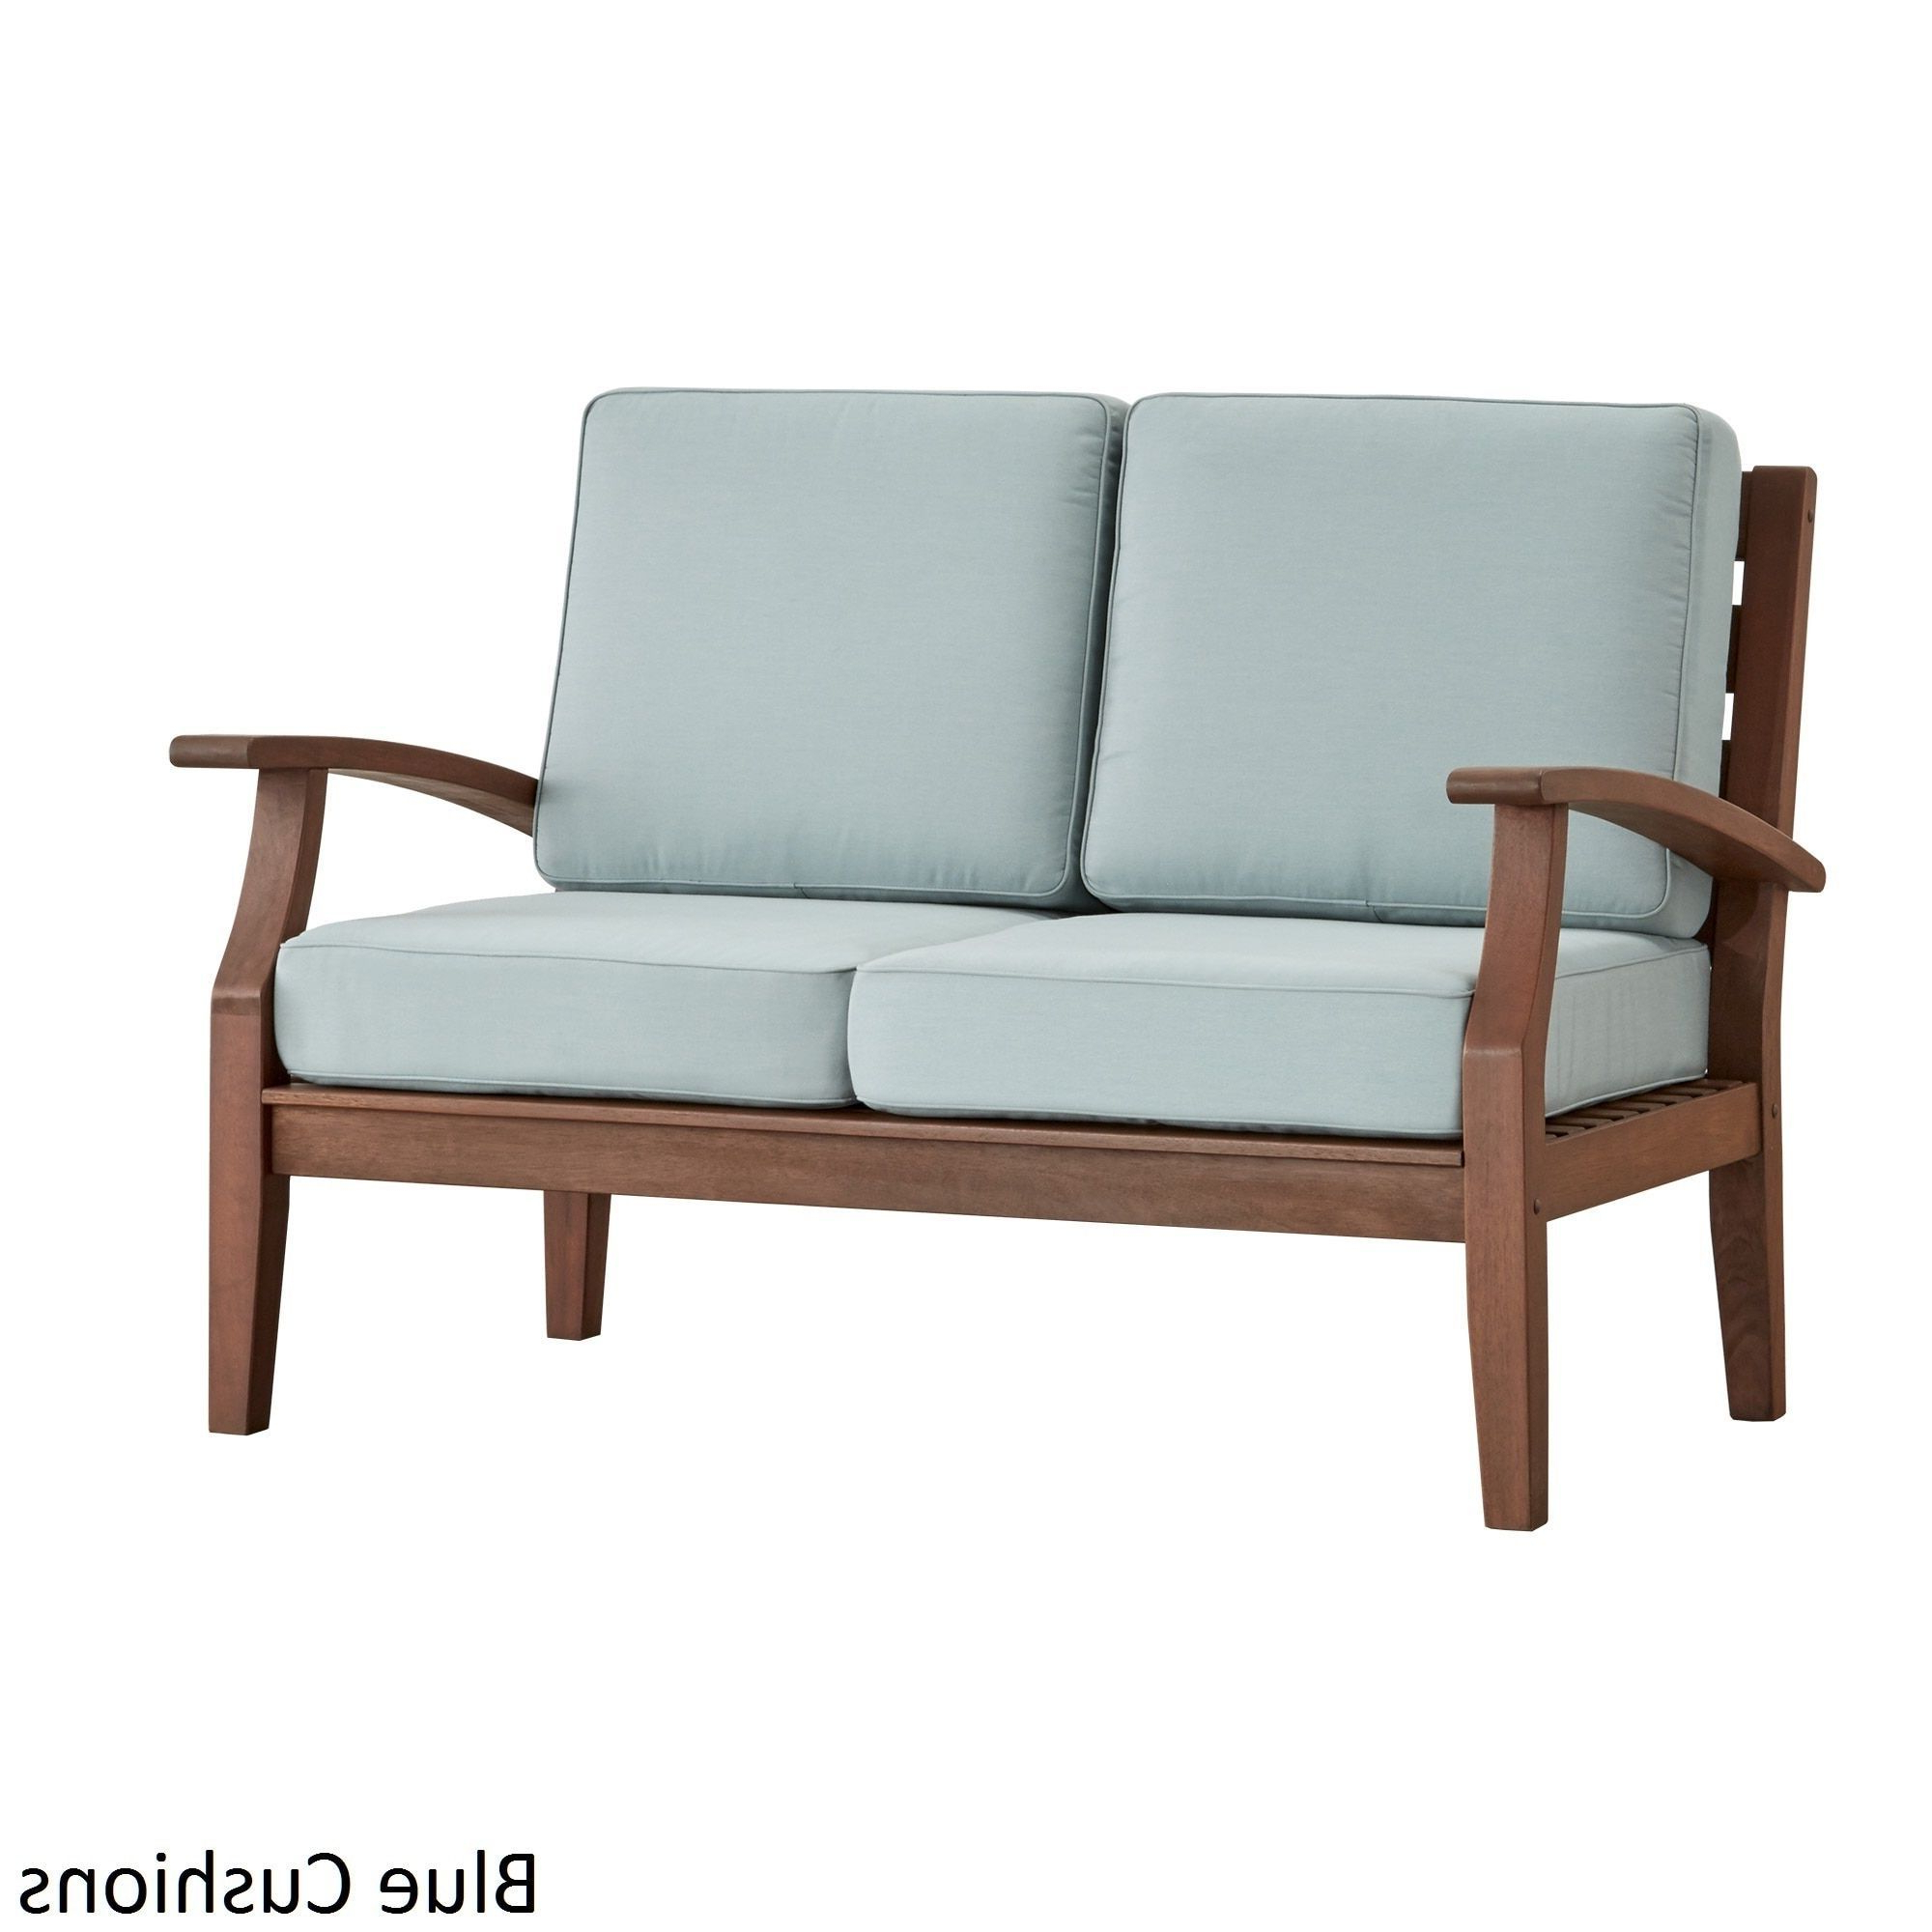 Most Recent Yasawa Brown Modern Outdoor Cushioned Wood Loveseat Inspire Regarding Pantano Loveseats With Cushions (View 8 of 20)